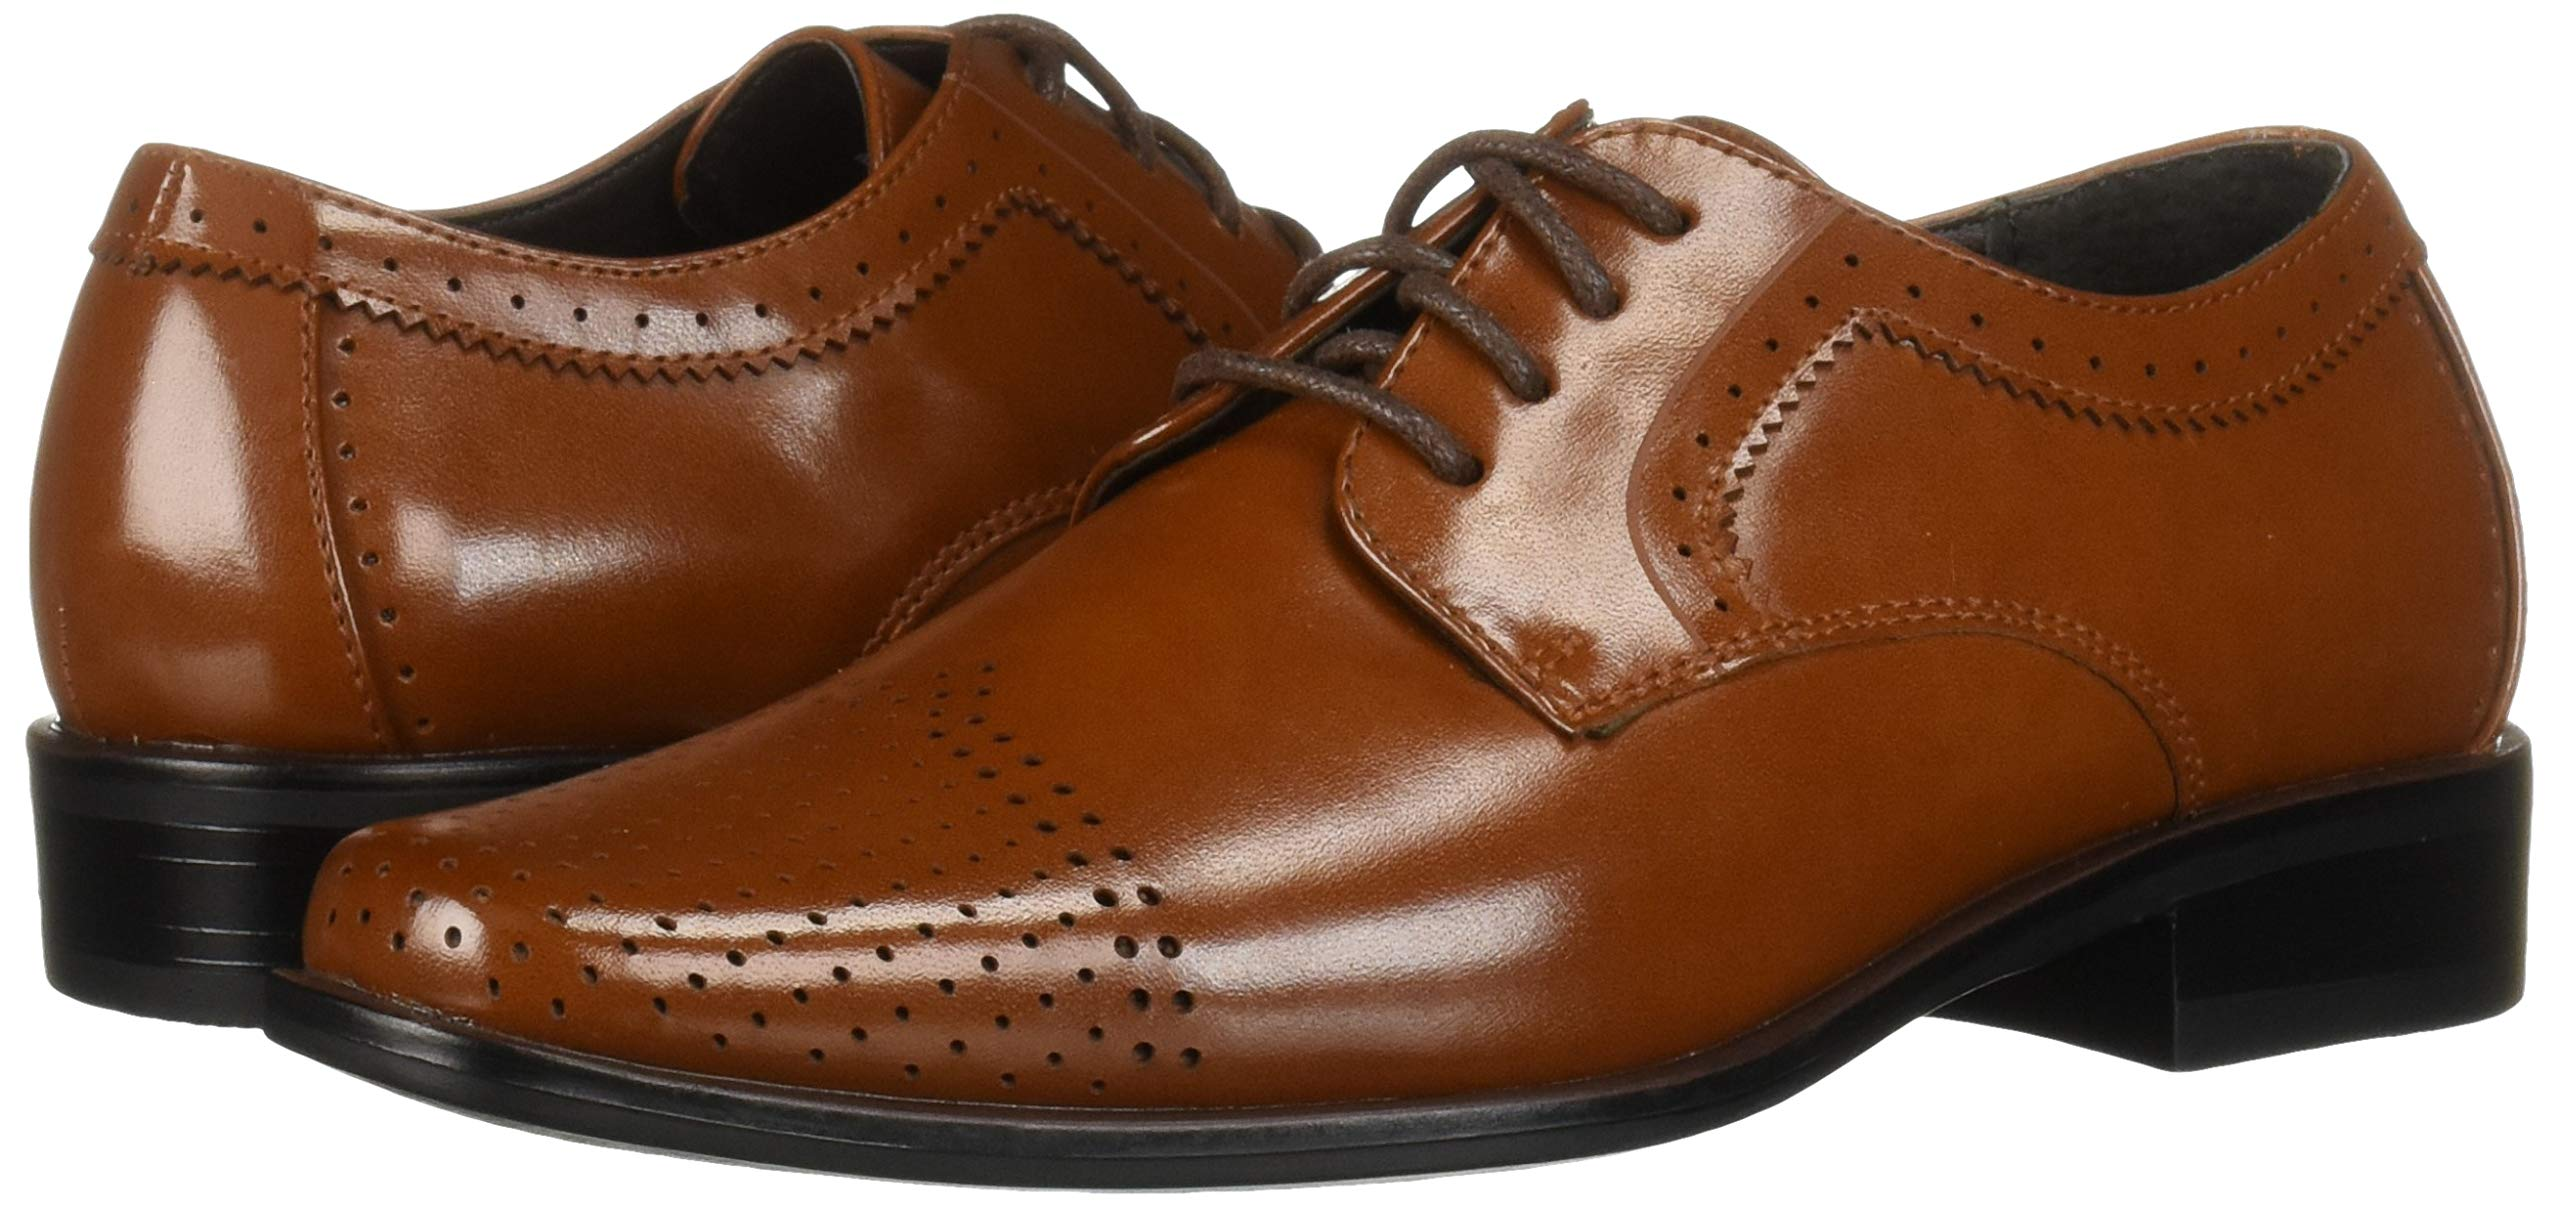 STACY ADAMS Unisex Sanborn Perfed Cap Toe Lace-Up Oxford, Cognac 5 M US Big Kid by STACY ADAMS (Image #6)